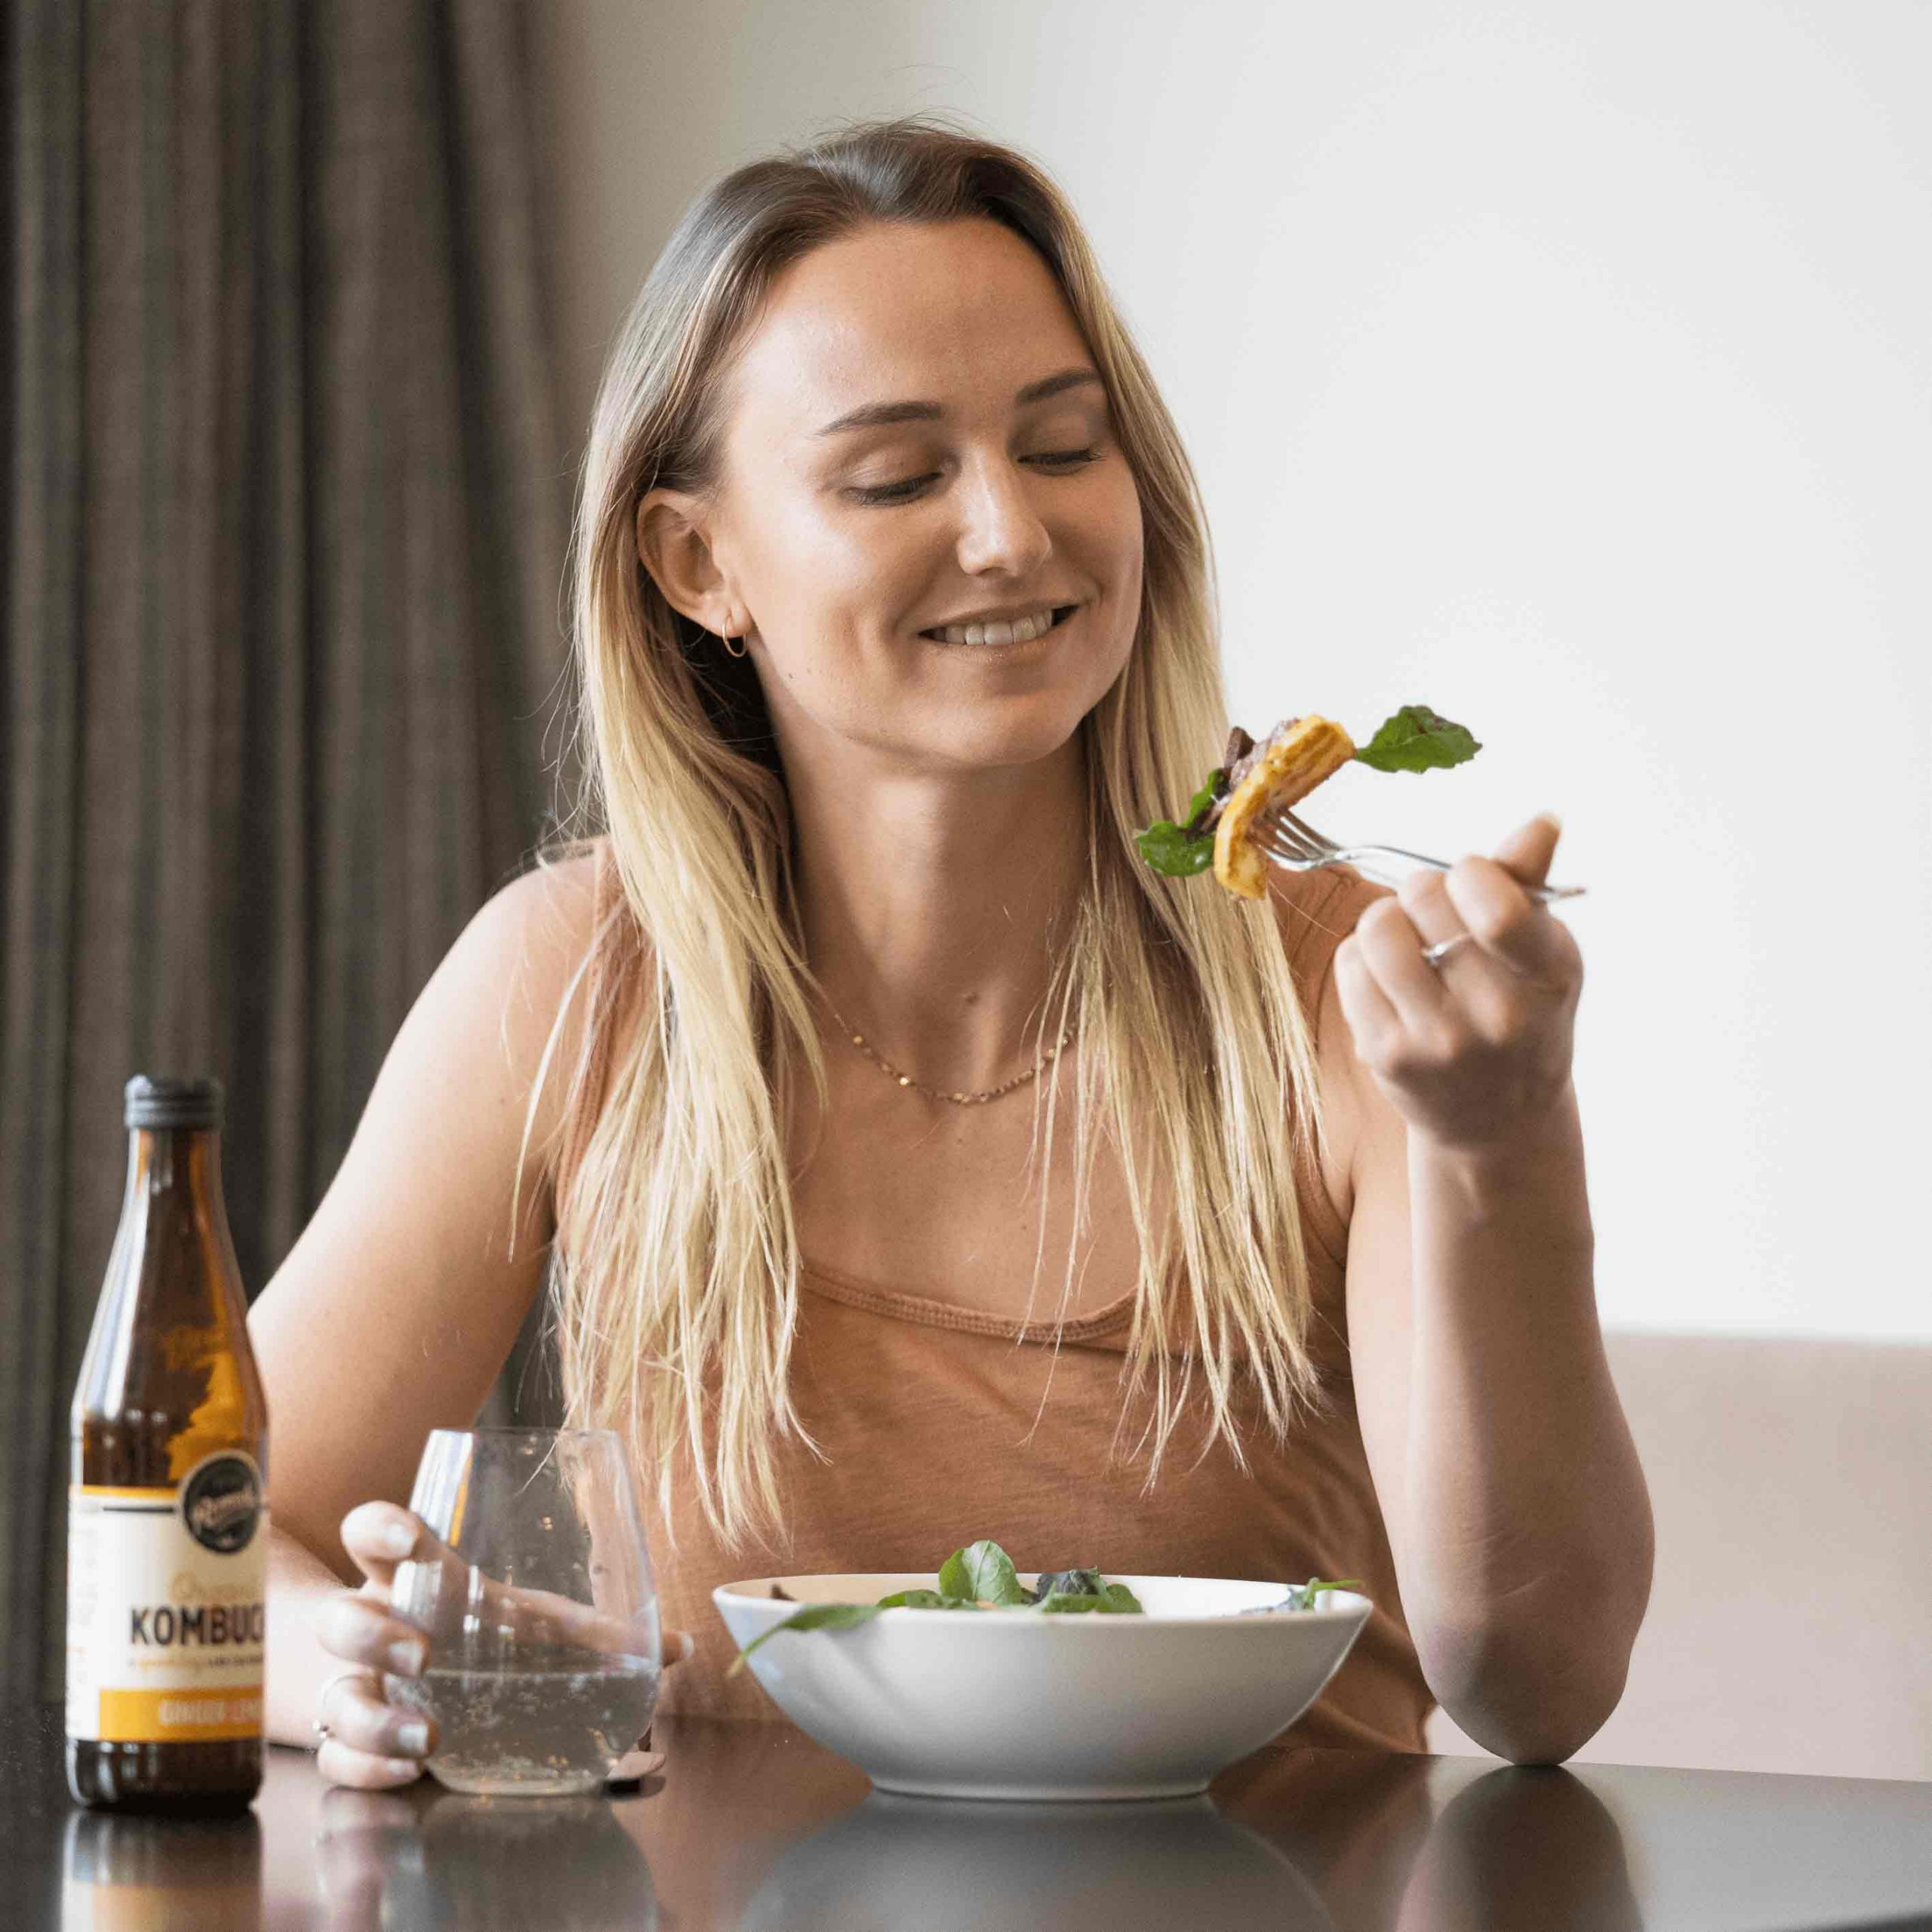 Nutritionist eats dinner at a table